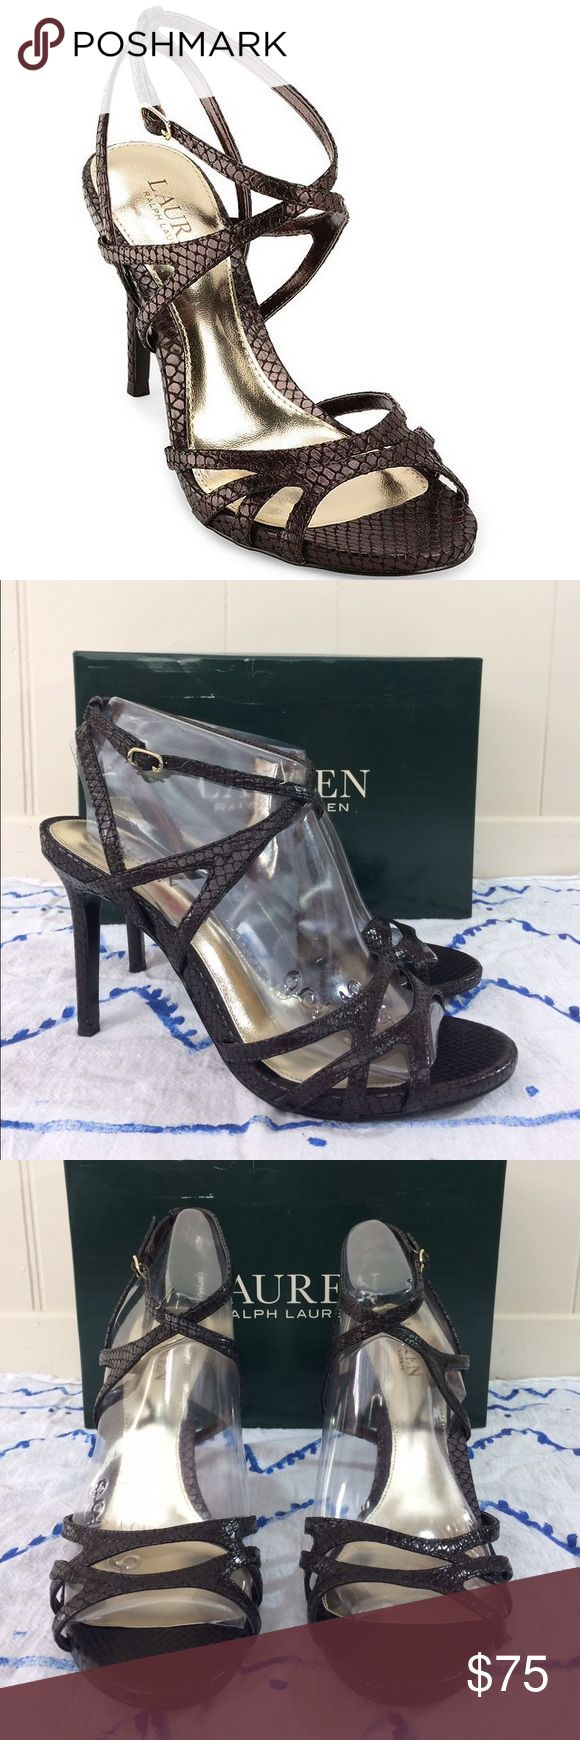 """NWT❣️ Lauren by Ralph Lauren   Dress Sandals ✨New in the box!✨ • Lauren by Ralph Lauren """"Tululla"""" dress sandals. • 100% leather upper - 100% synthetic lining. • In the color """"Oxdz Brown Snake"""" • Heel height measures: 4 1/4"""". • Size 10. • {If you have any questions please ask before buying.} •Colors may vary slightly from pictures• Lauren Ralph Lauren Shoes Heels"""